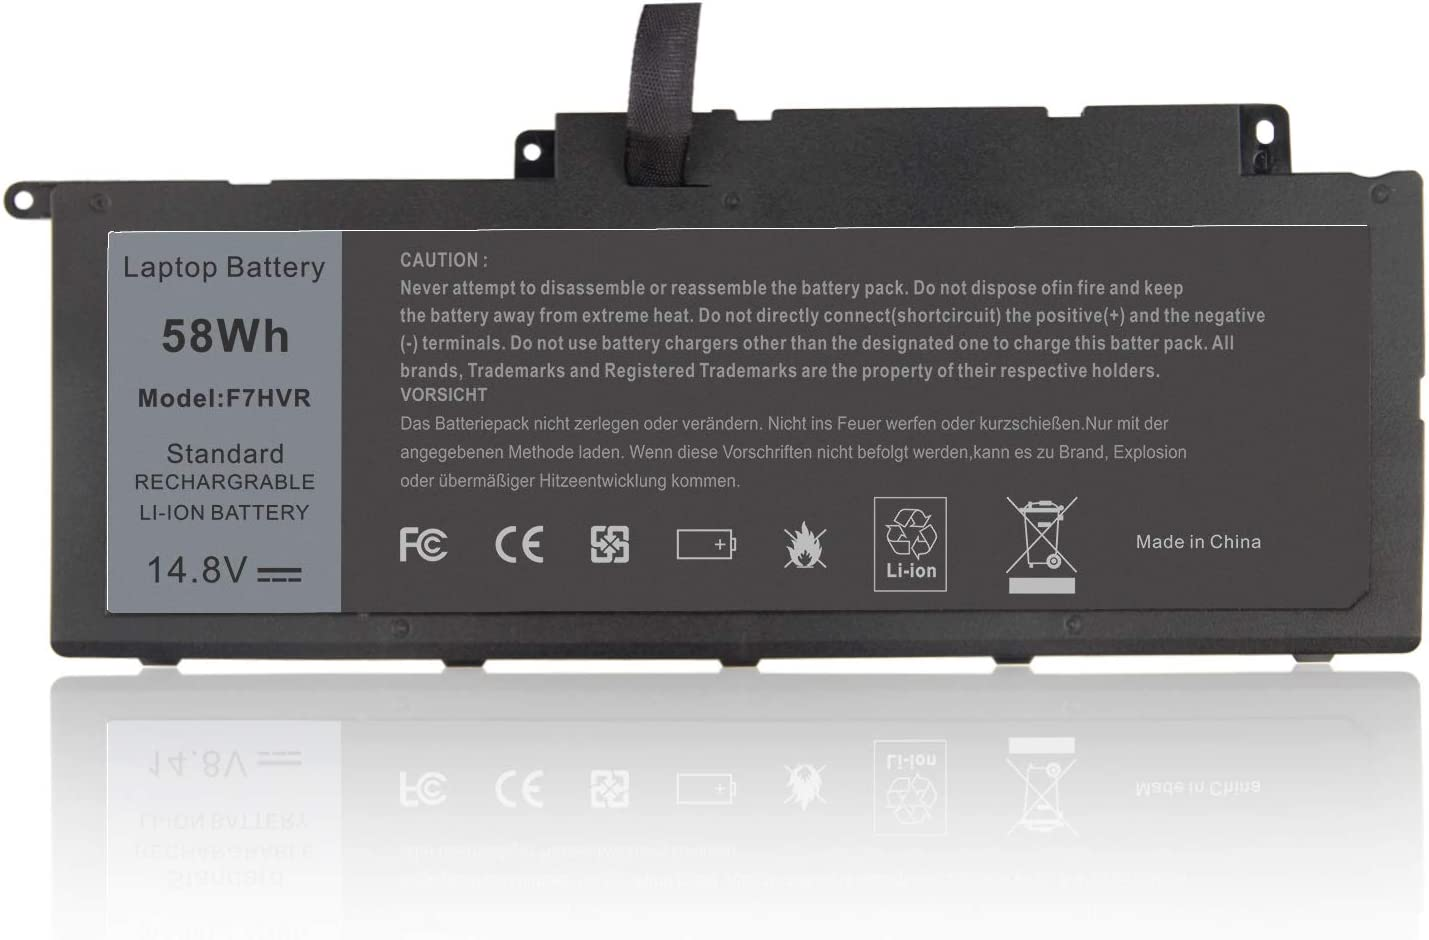 F7HVR 062VNH G4YJM T2T3J Laptop Battery for DELL Dell Inspiron 15 7537 / Insprion 17 7737 14.8V-58Wh